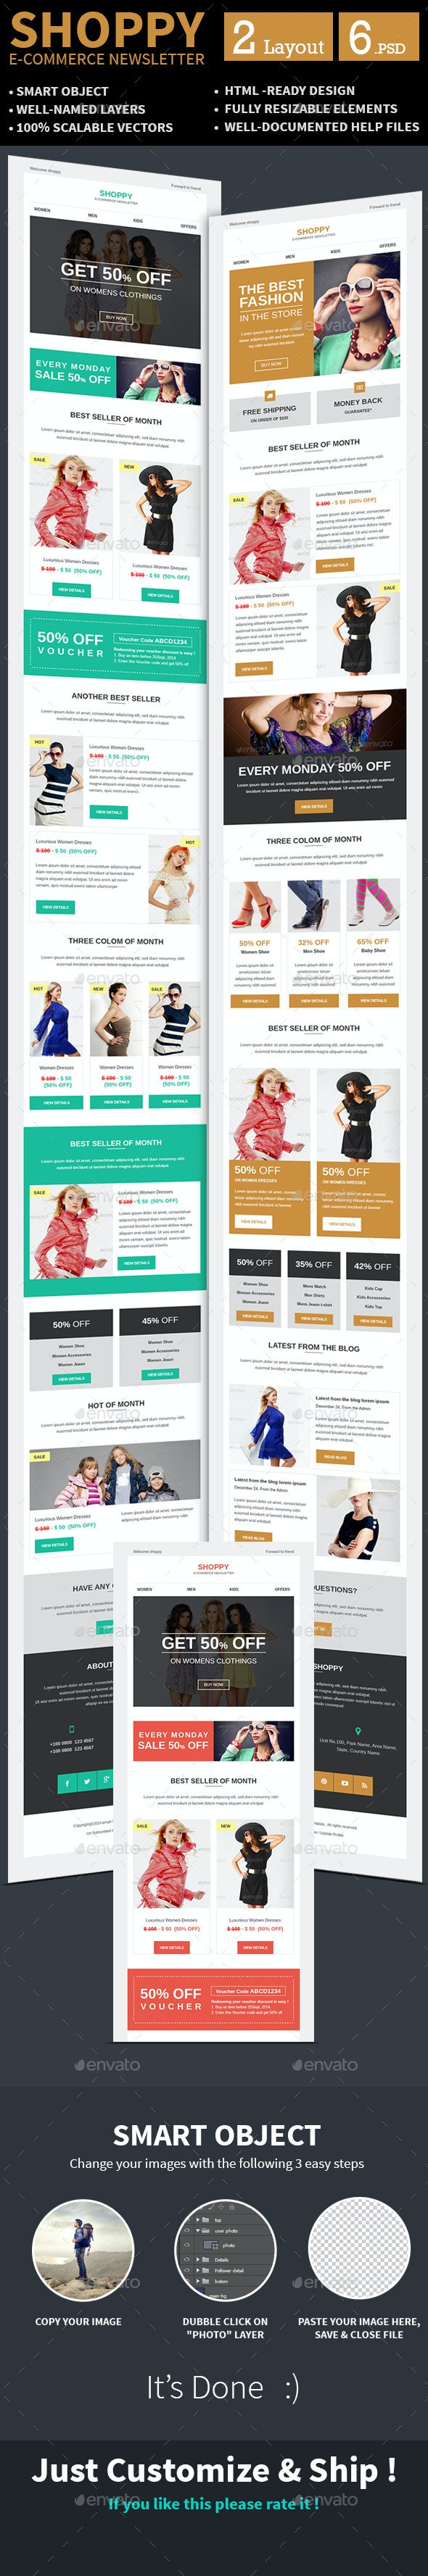 E-commerce Special Offer Newsletter PSD Template